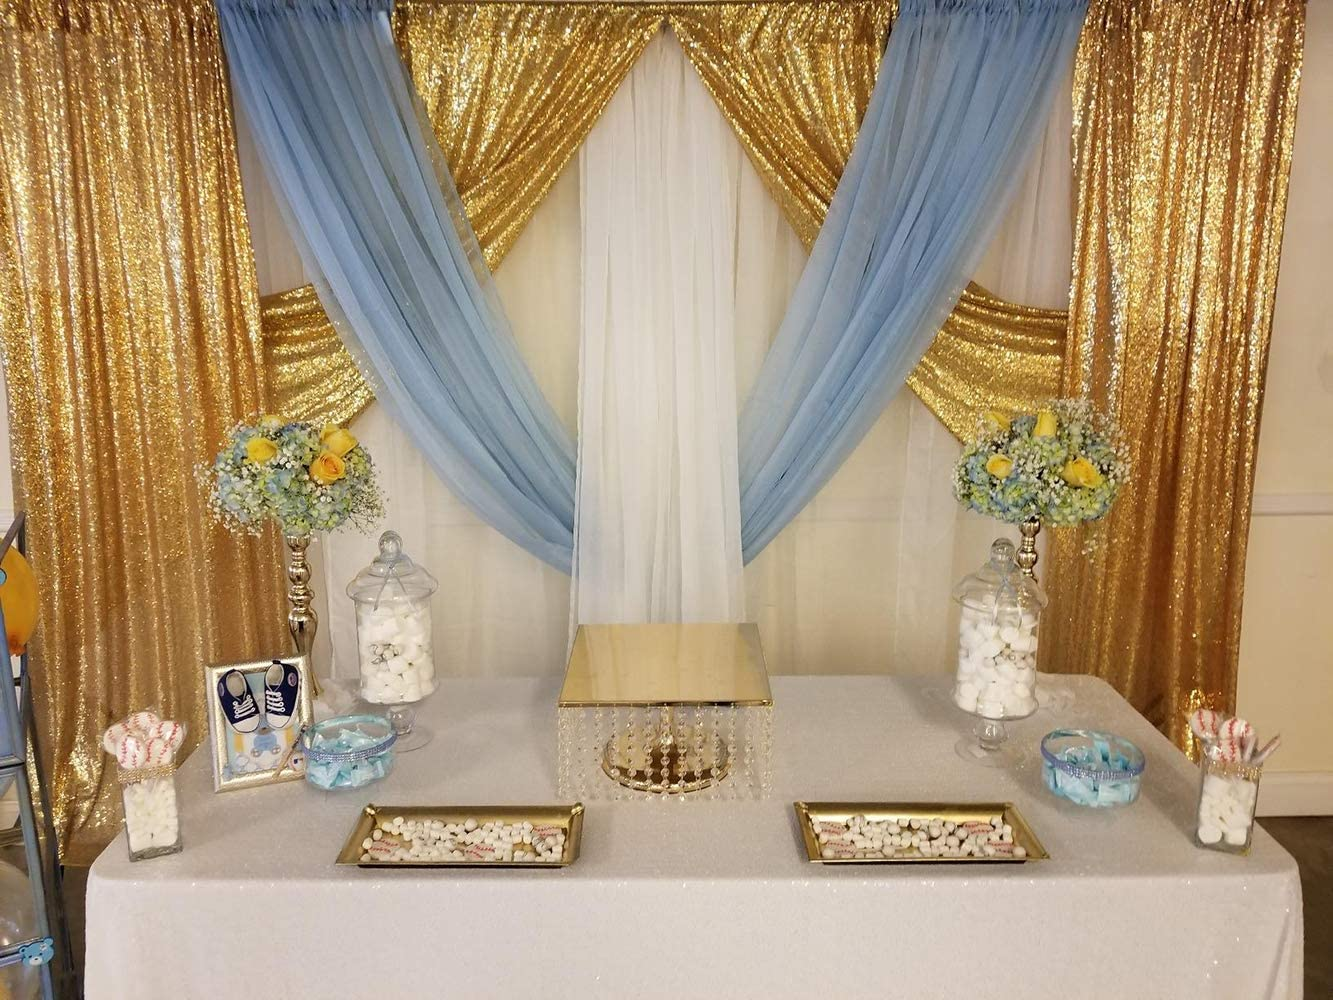 Wedding Sequin Backdrop Curtains 4 Pack 2ftx8ft Baby Blue Sparkly Photography Backdrop Birthday Party Background Decoration